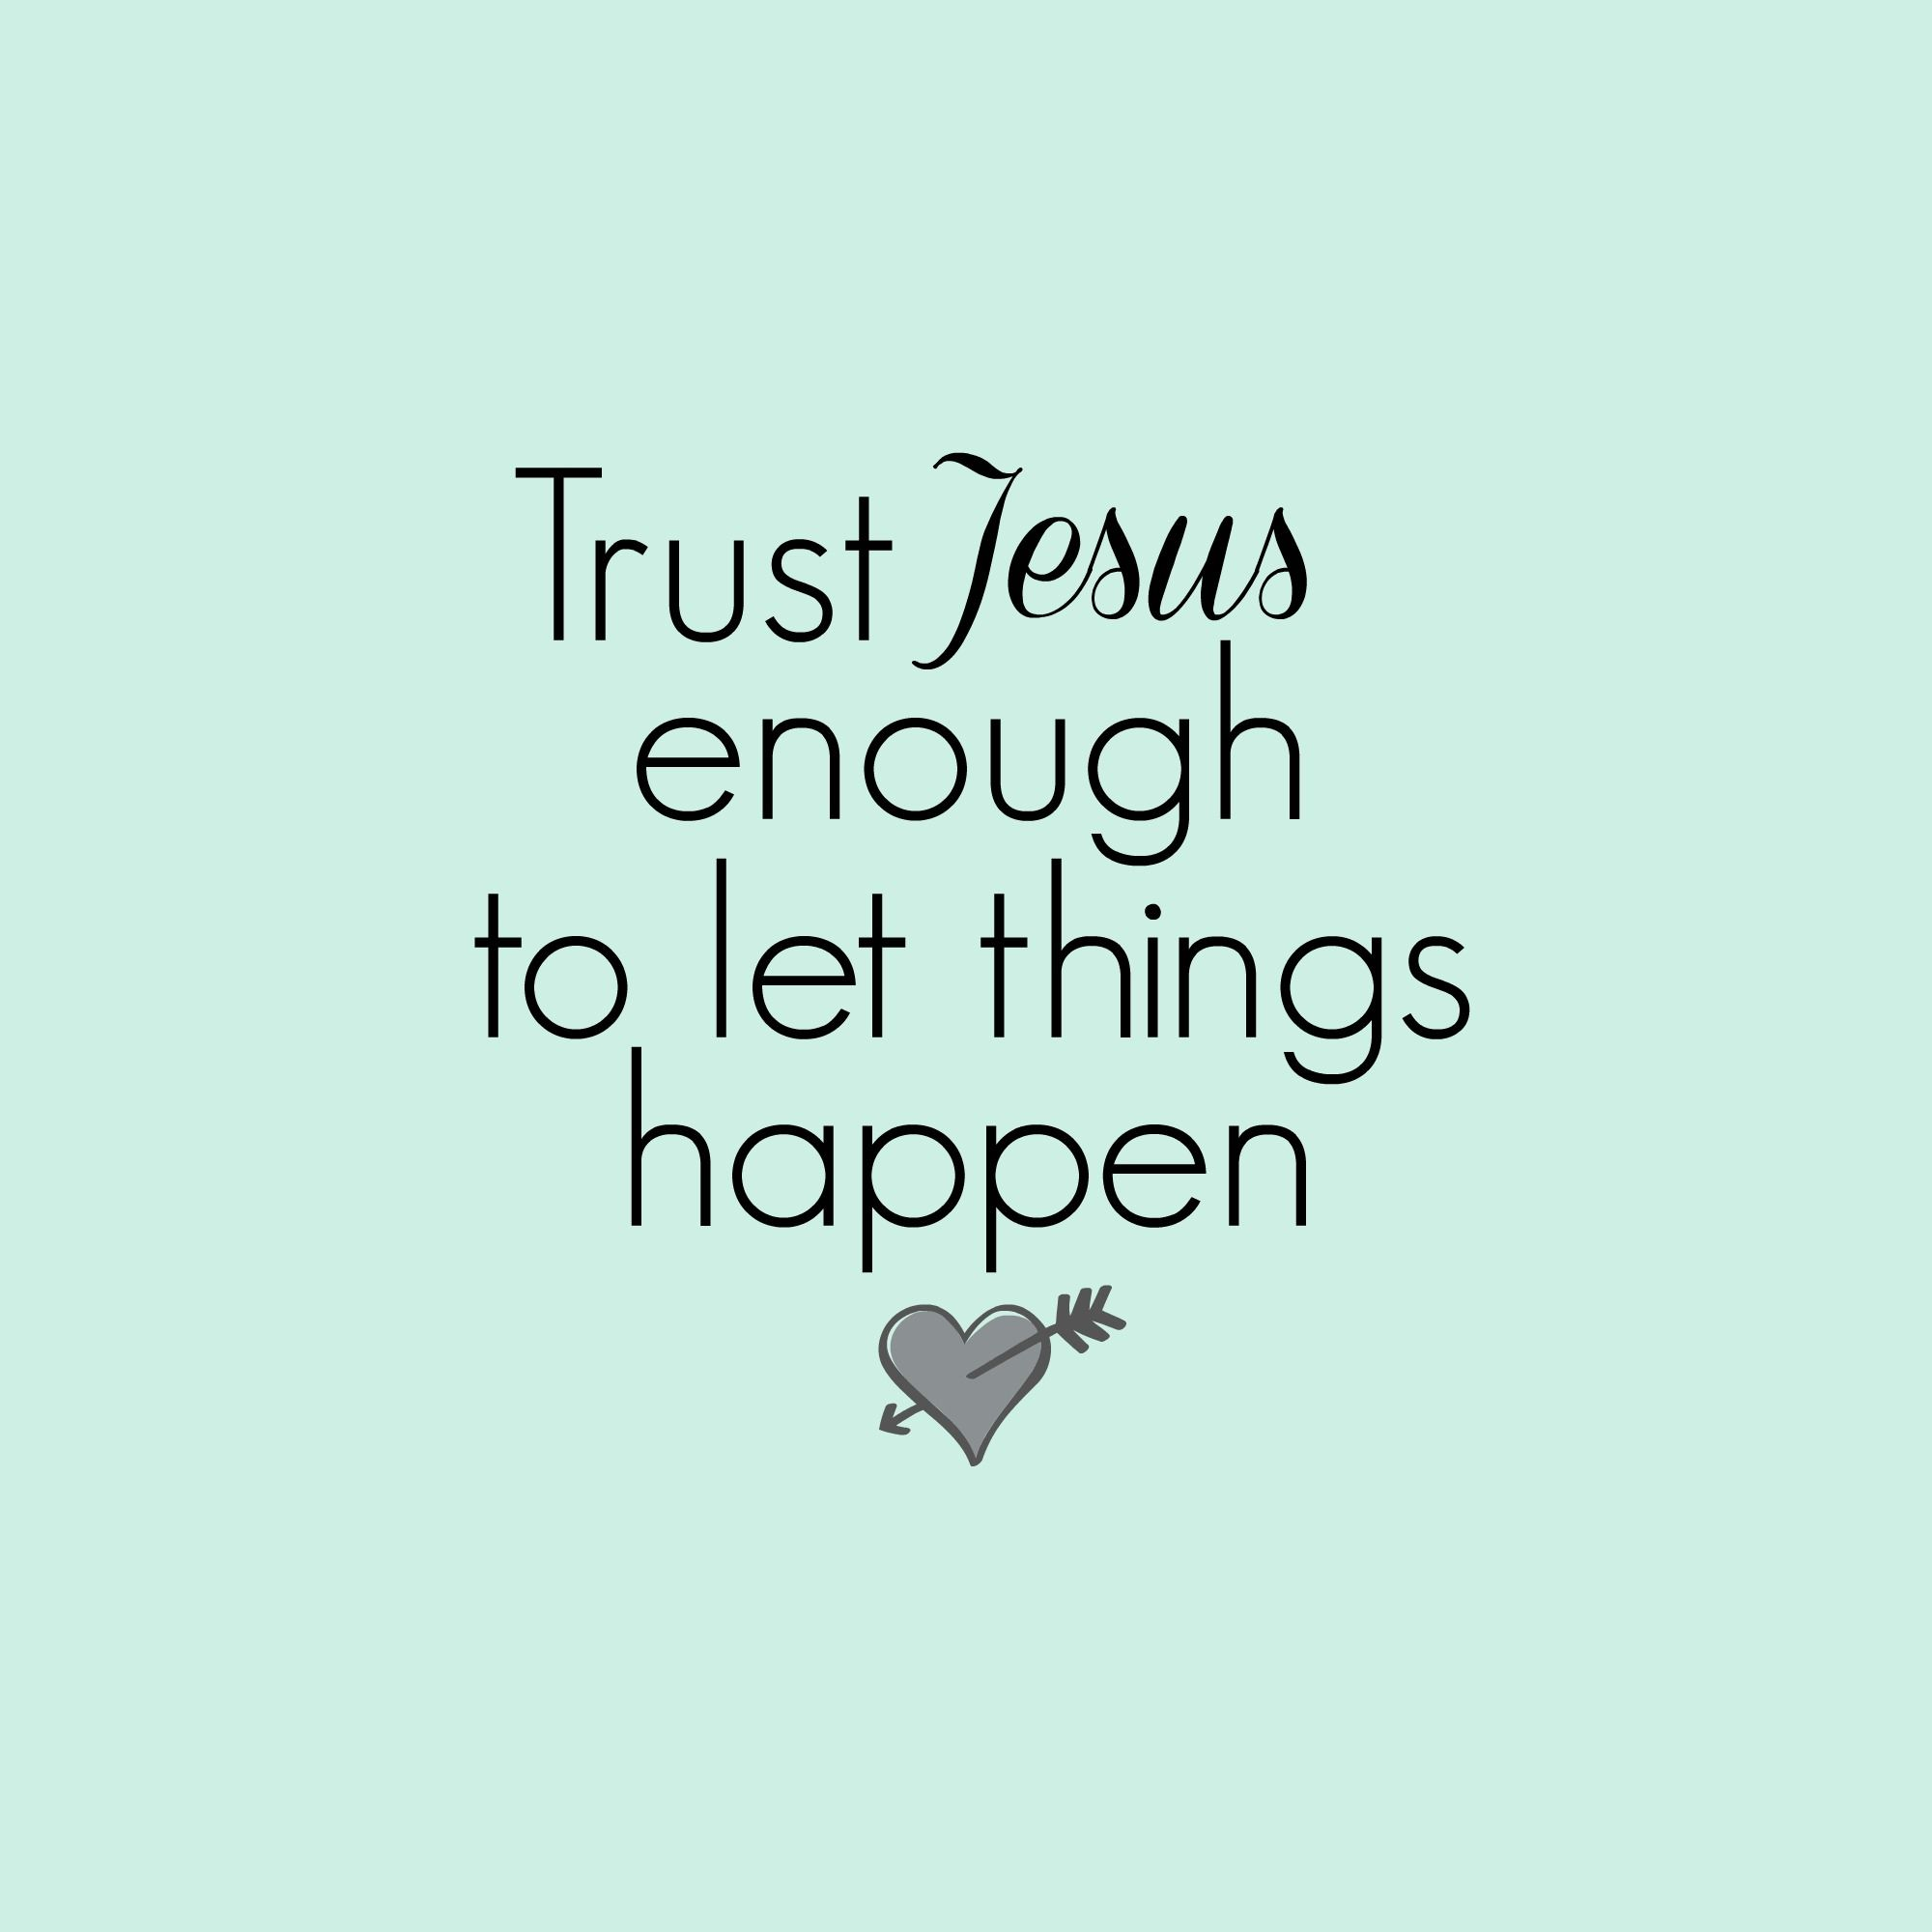 Quotes On Letting Things Happen: Great Inspirational Quotes From Footprints Of Inspiration